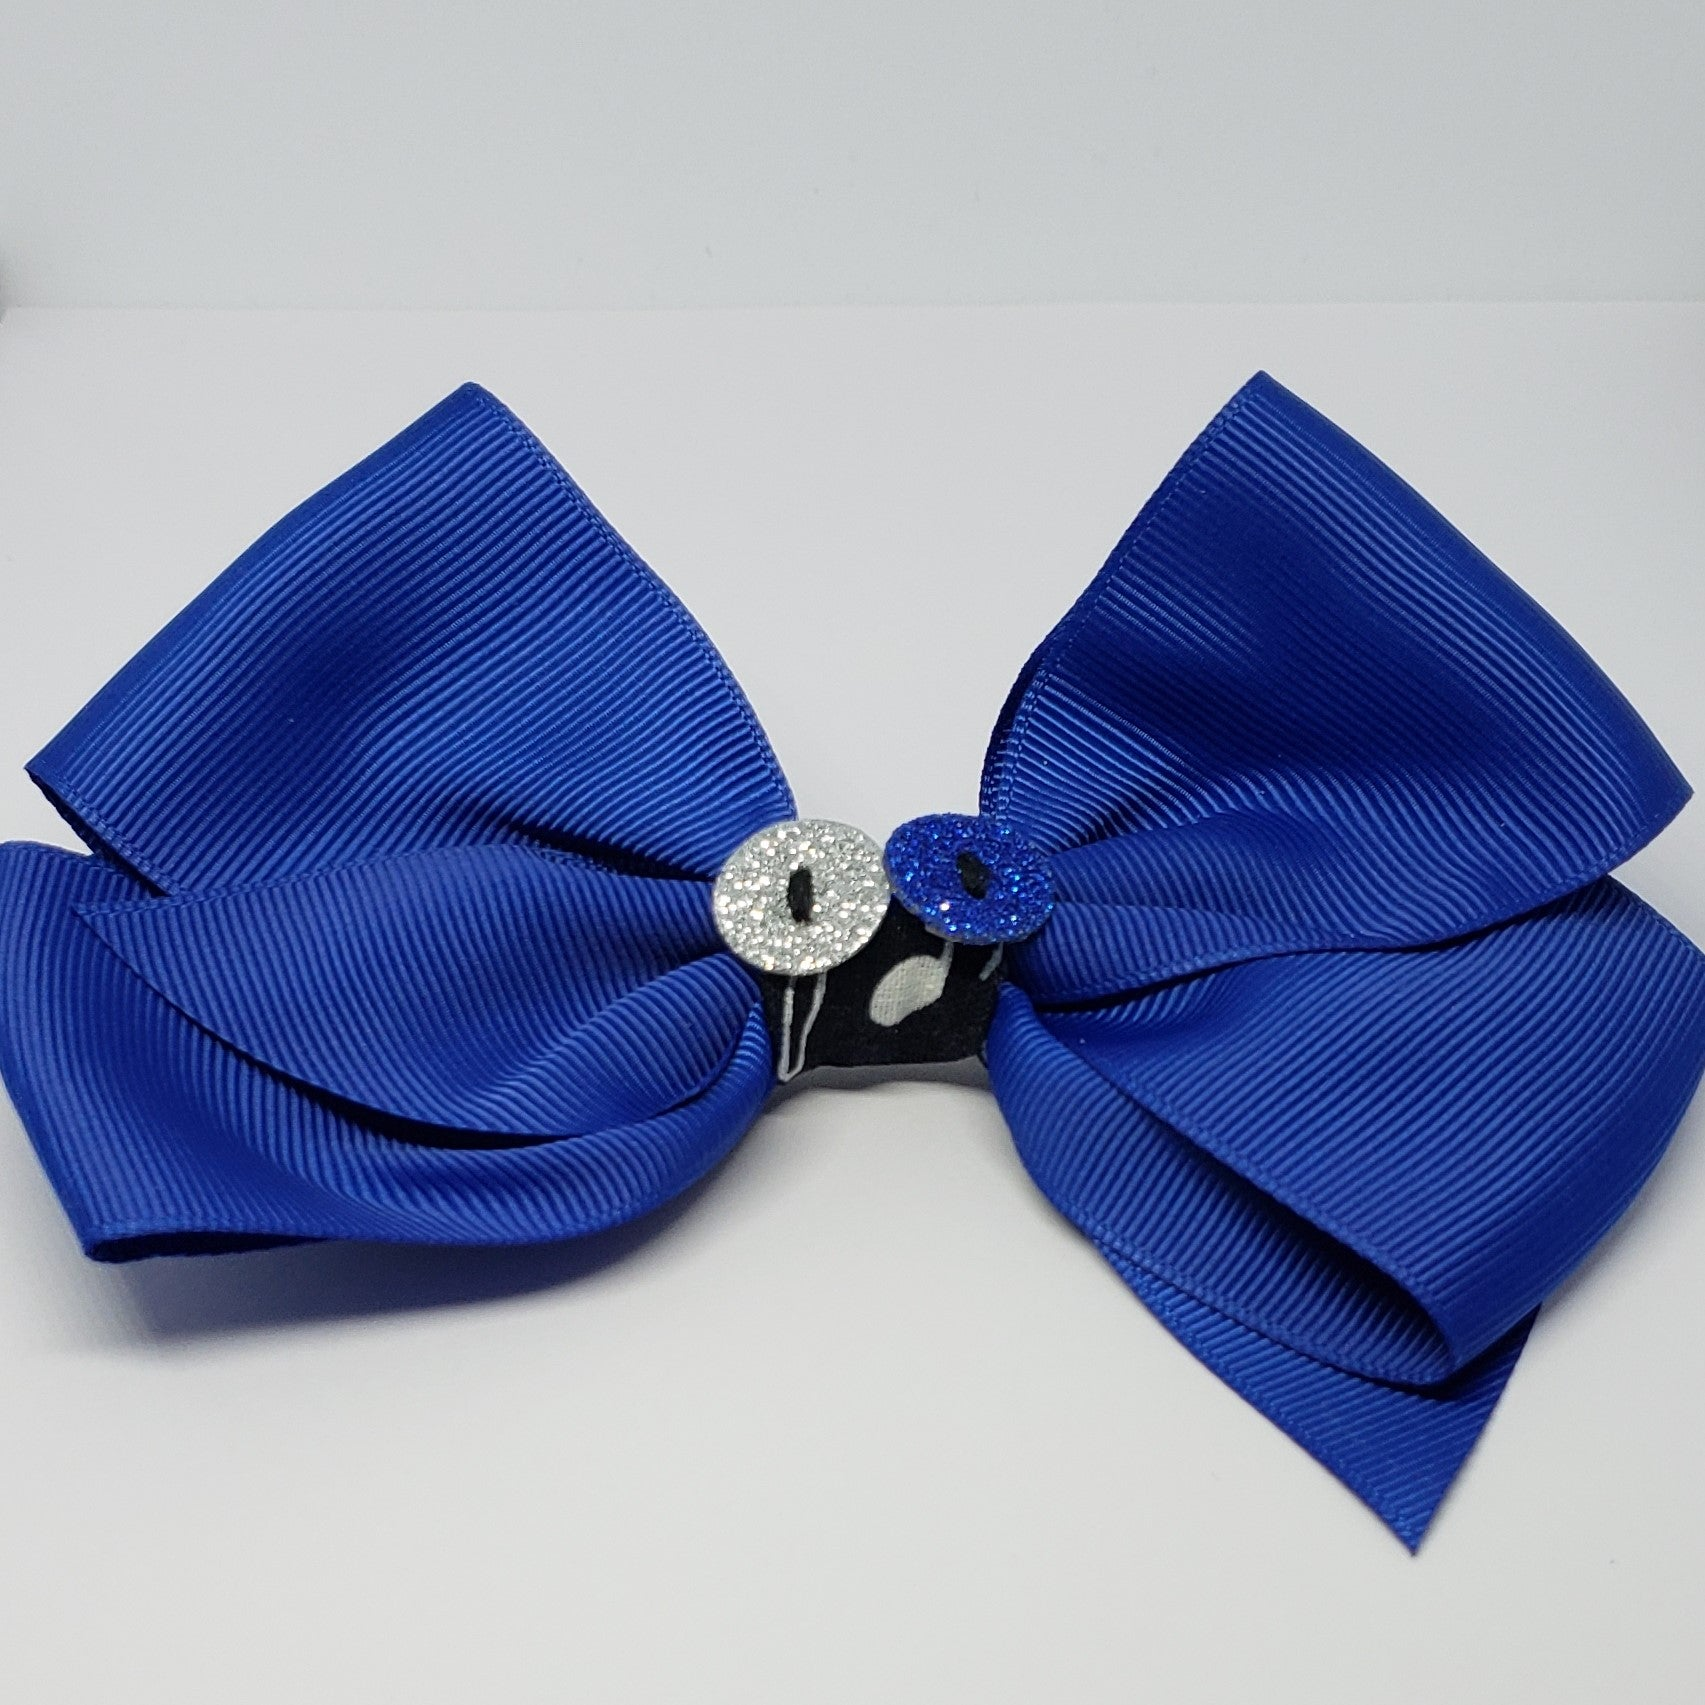 Kelsea Hairclip in Royal Blue & Black with Sparkle Button Detail - Houzz of DVA Boutique